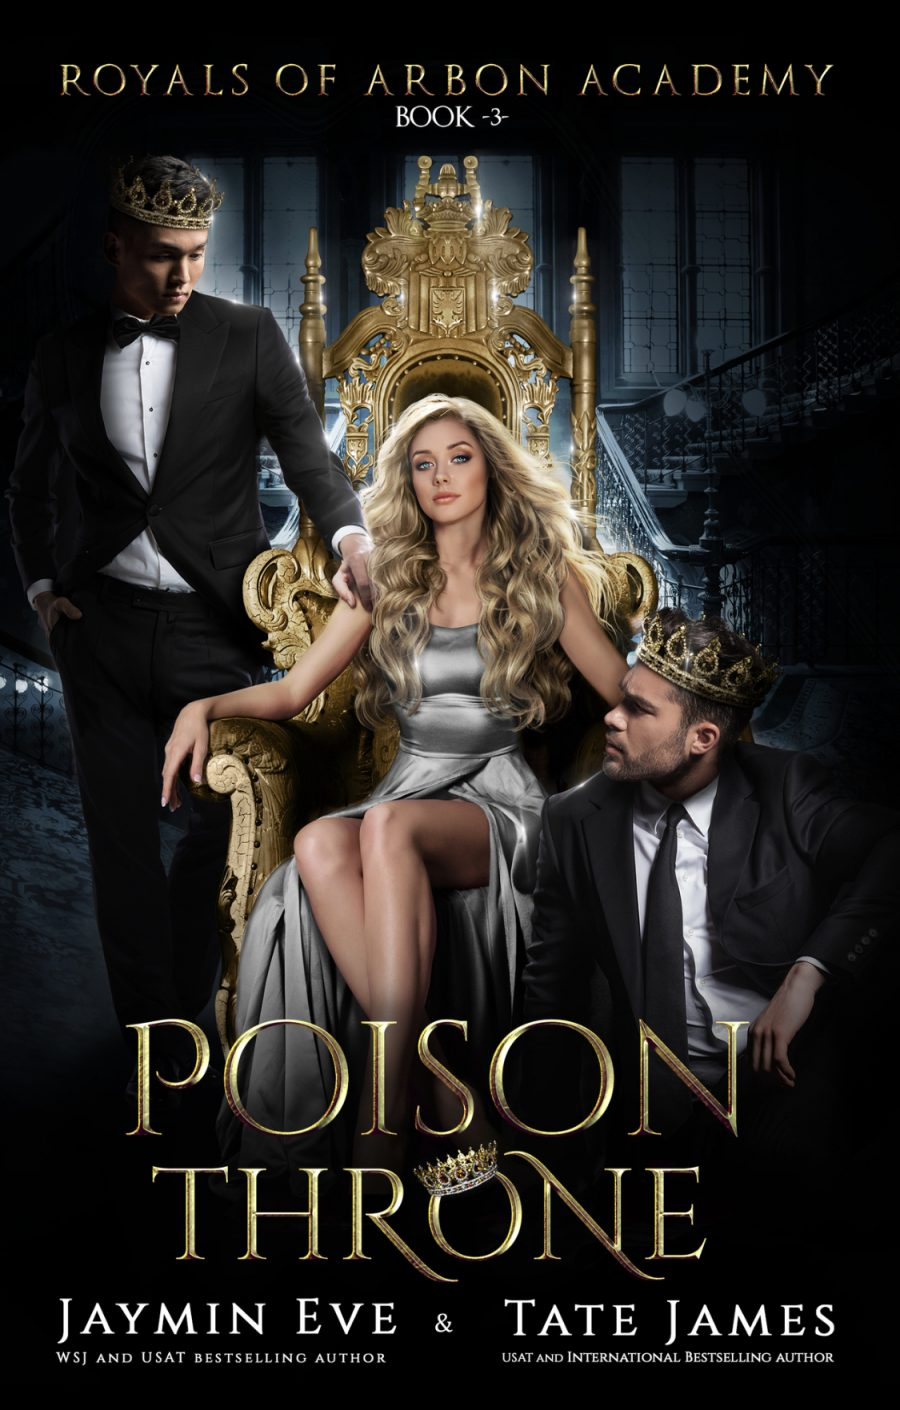 Poison Throne (Royals of Arbon Academy - Book 3) by Jaymin Eve & Tate James - A Book Review #BookReview #FinalBook #4Stars #KindleUnlimited #KU #Future